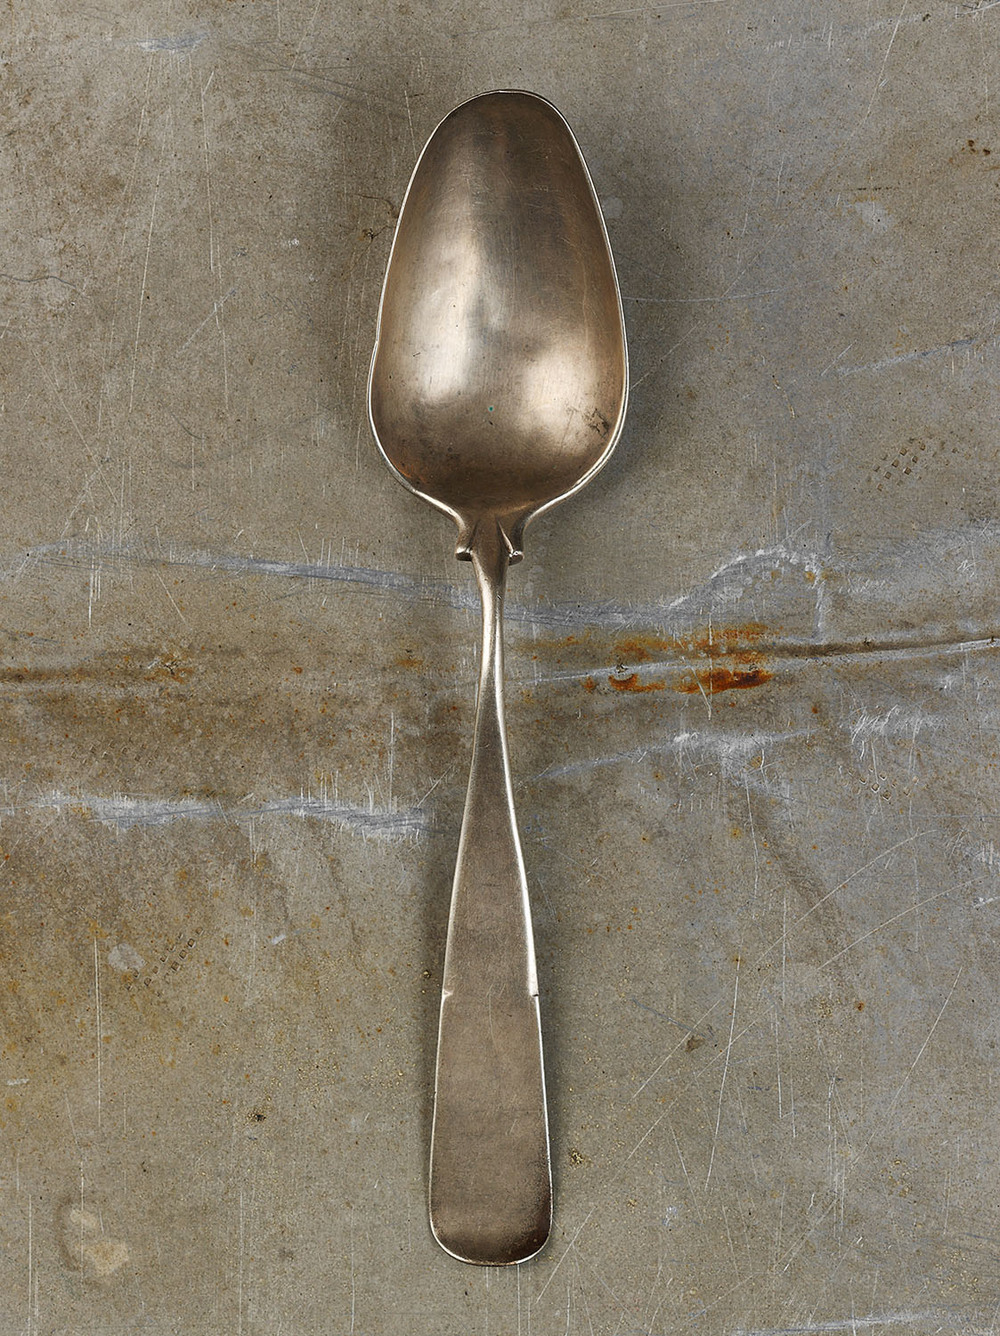 #46 Silver Serving Spoon